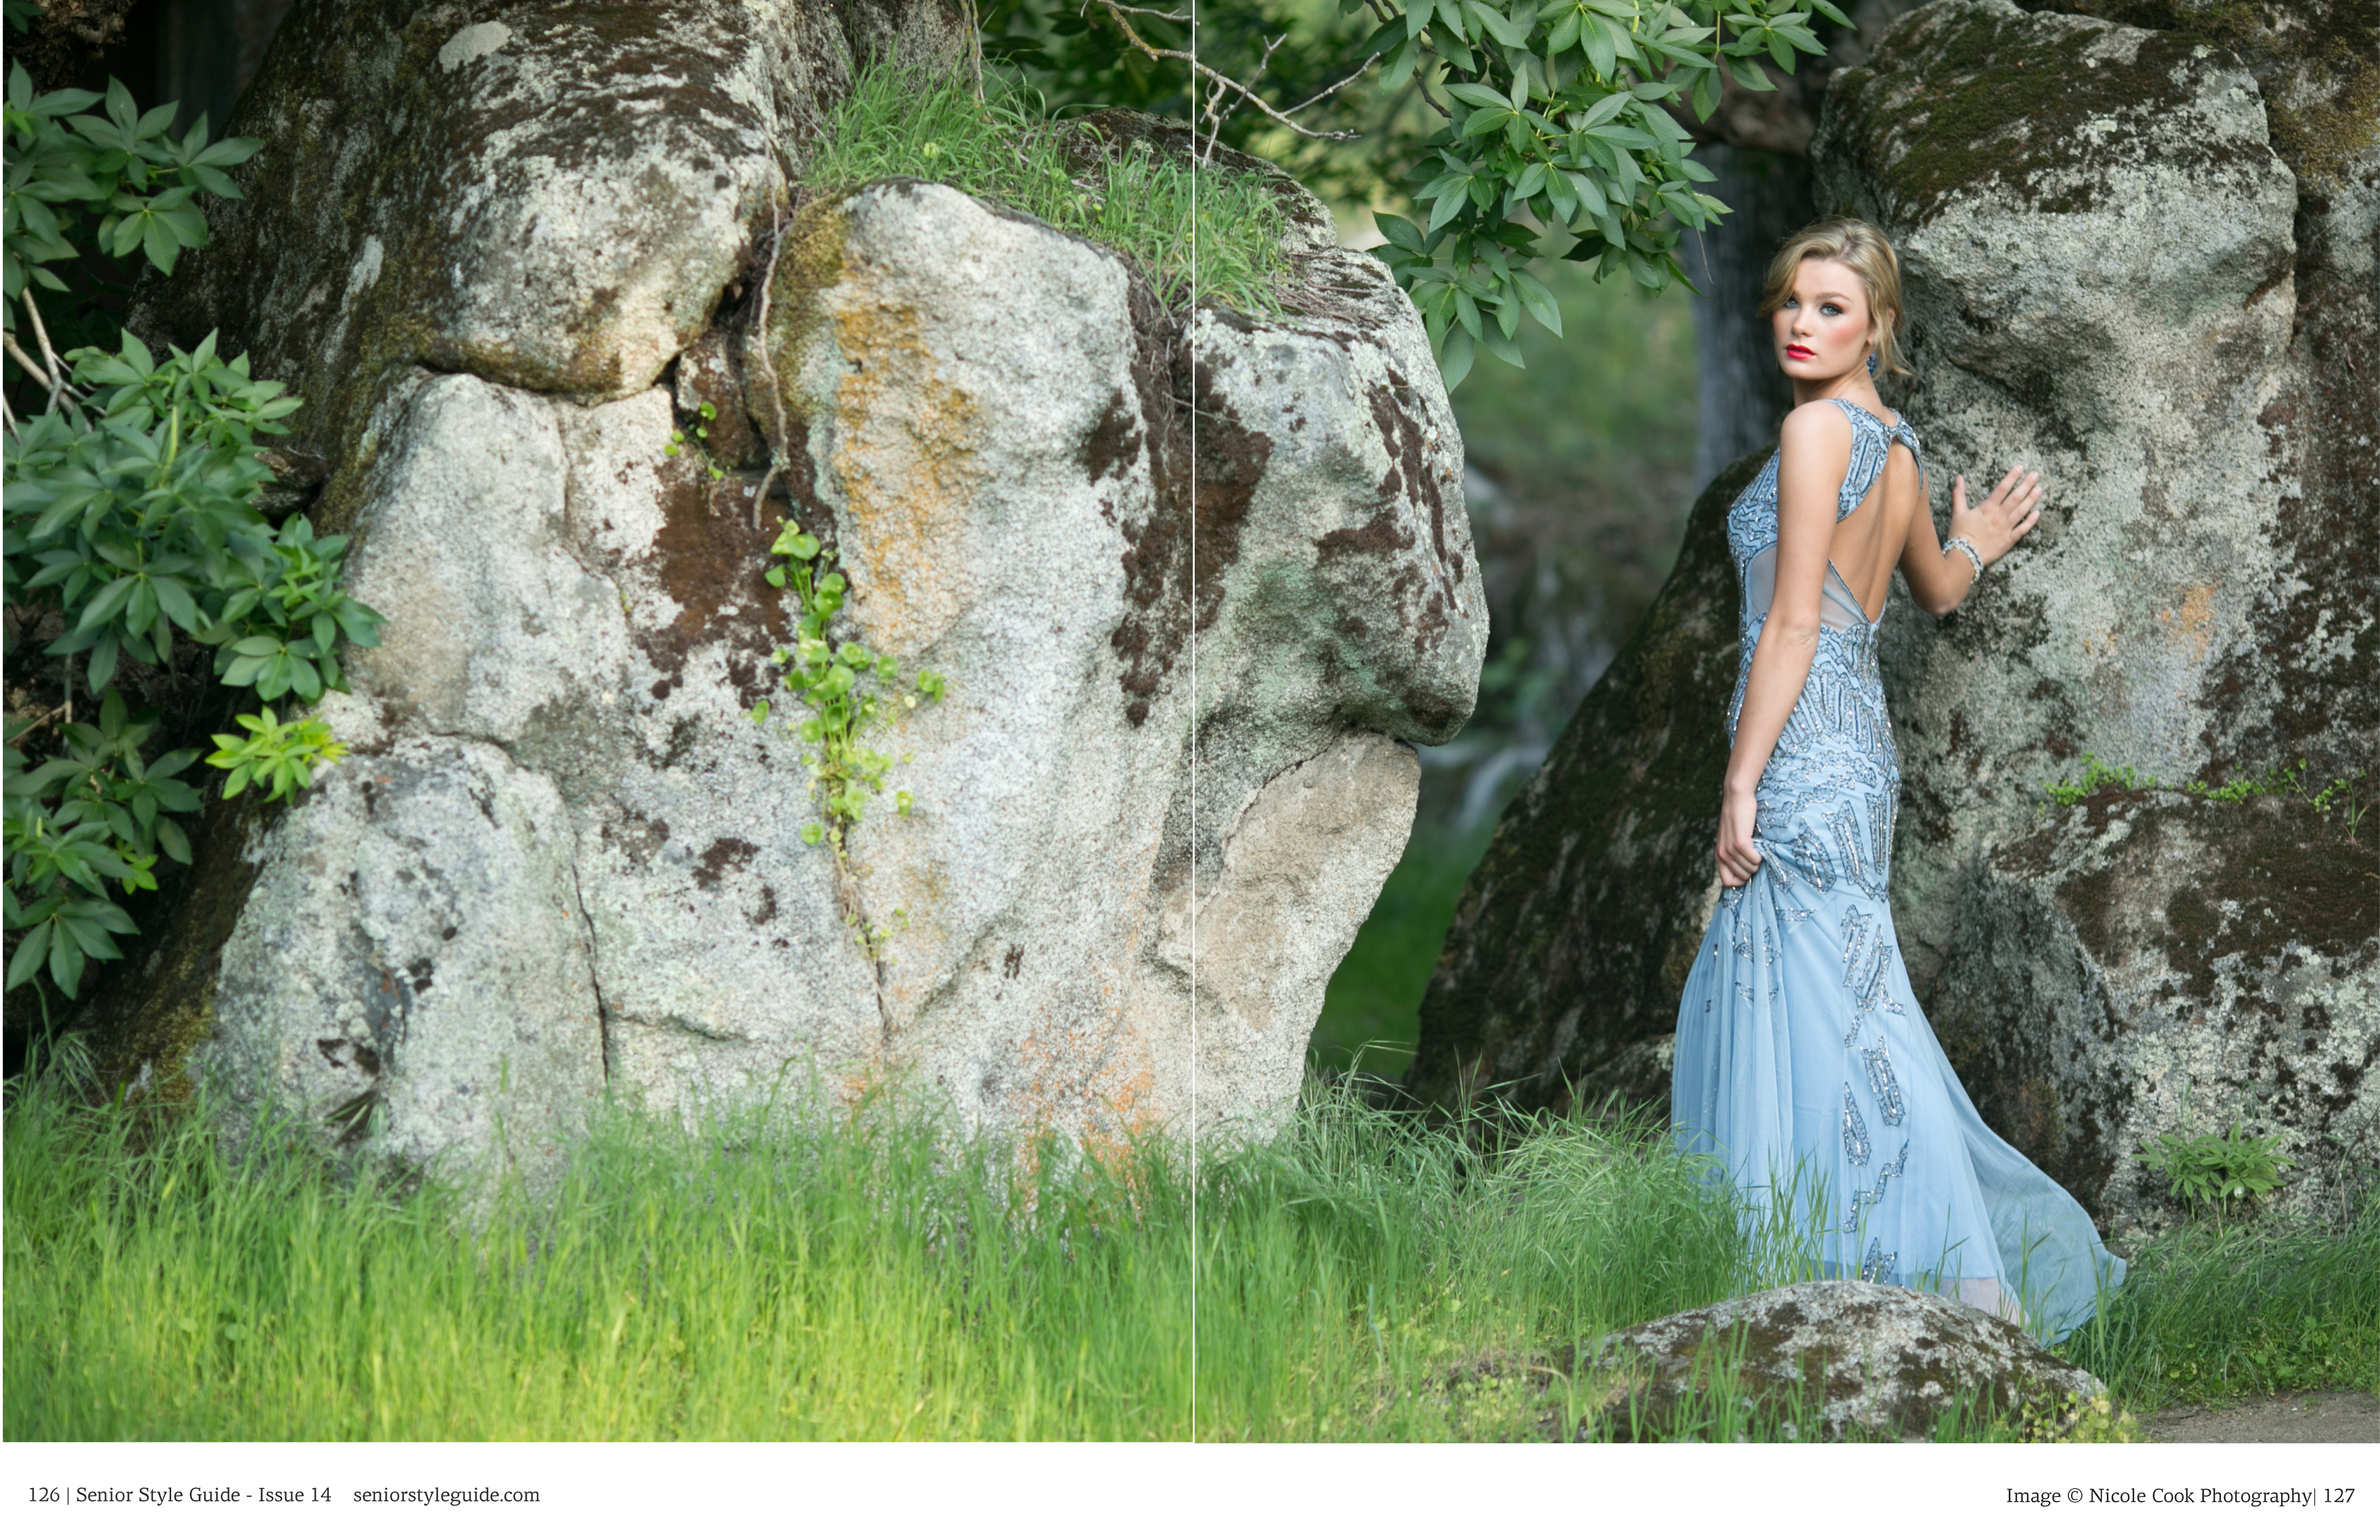 high school senior in green grass and rock formations